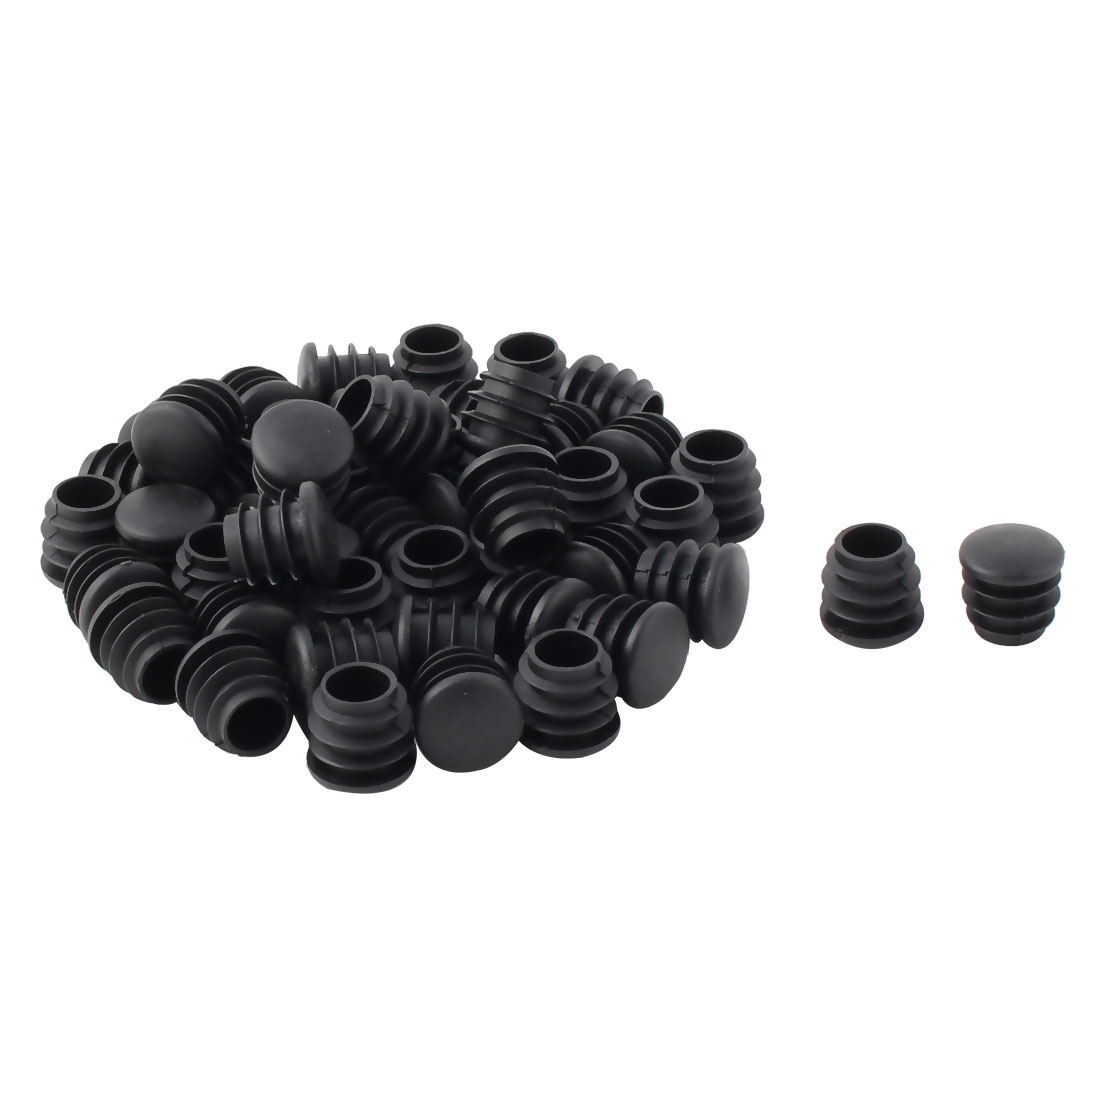 Plastic Round Tube Insert Furniture Piano Legs Protectors Caps Black 19mm 48pcs